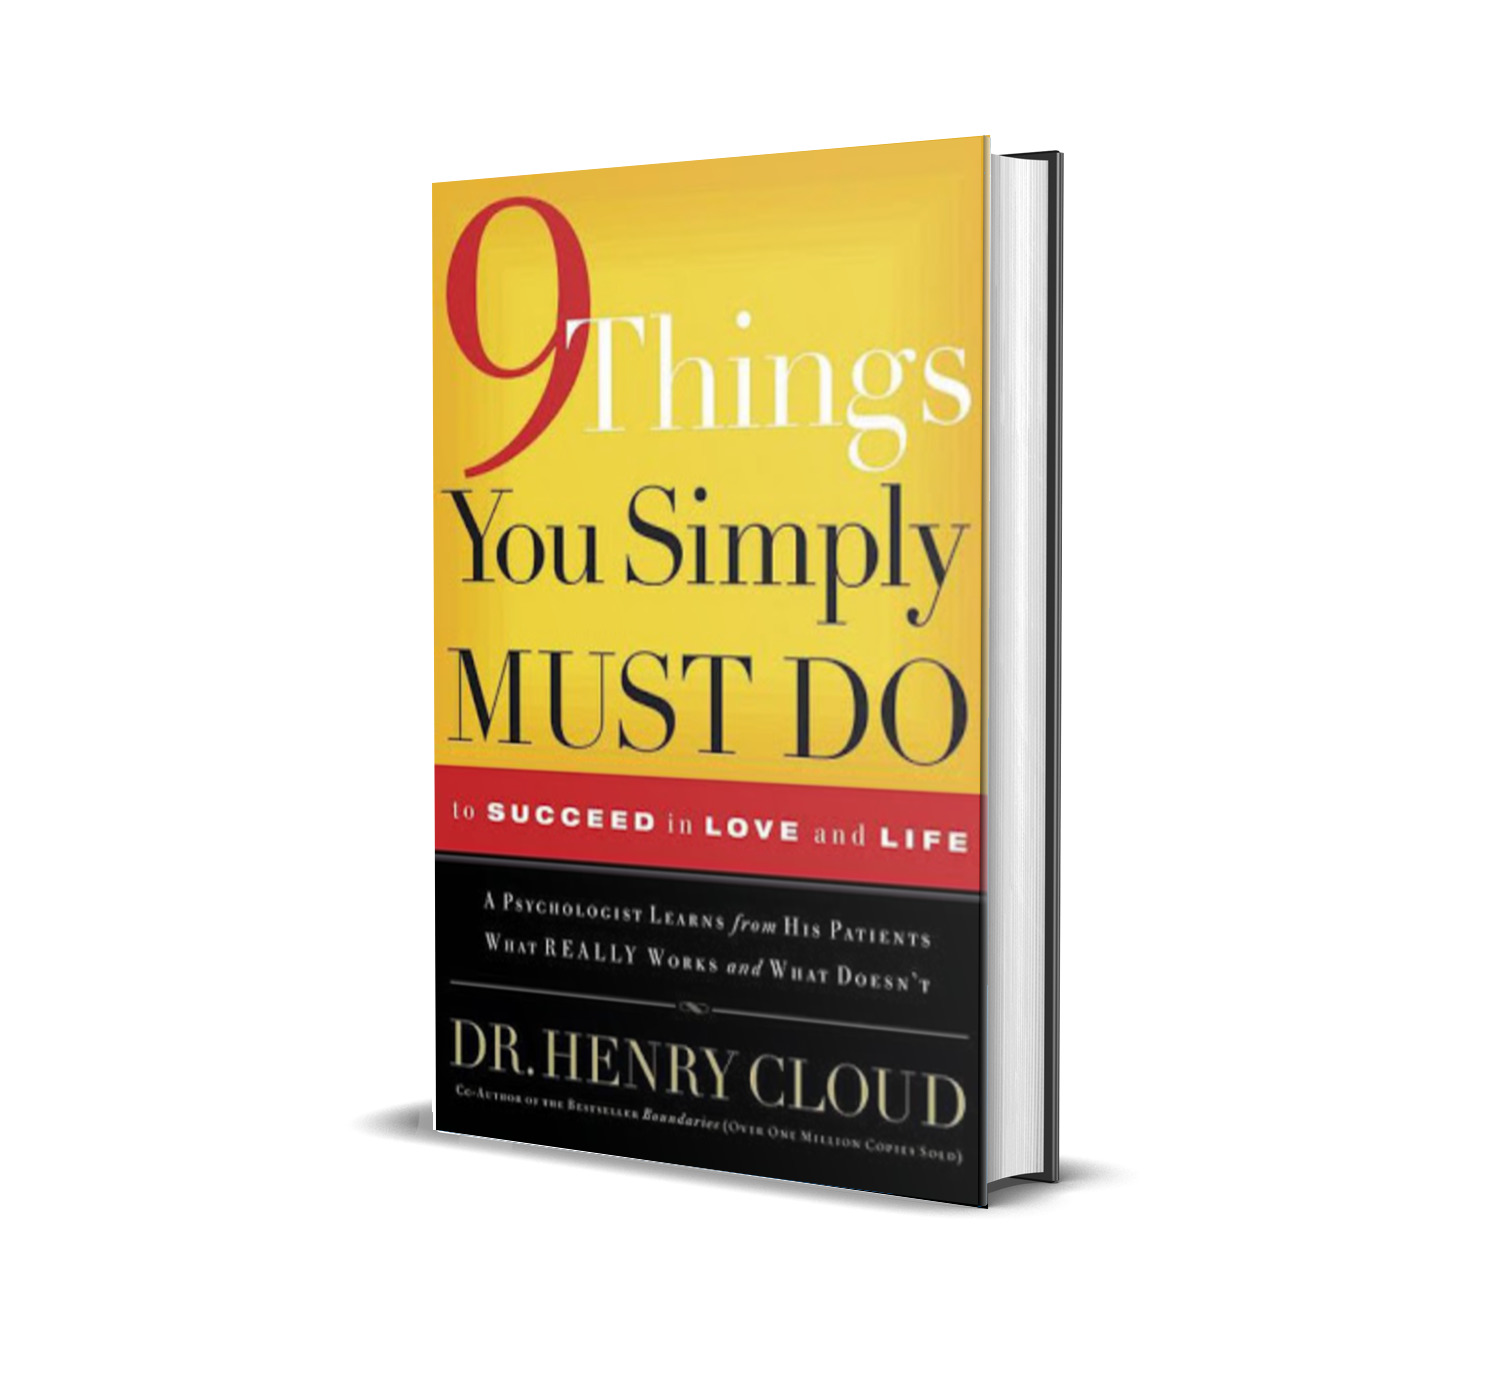 9 things you simply must do to succeed in love and life - Dr.Henry Cloud